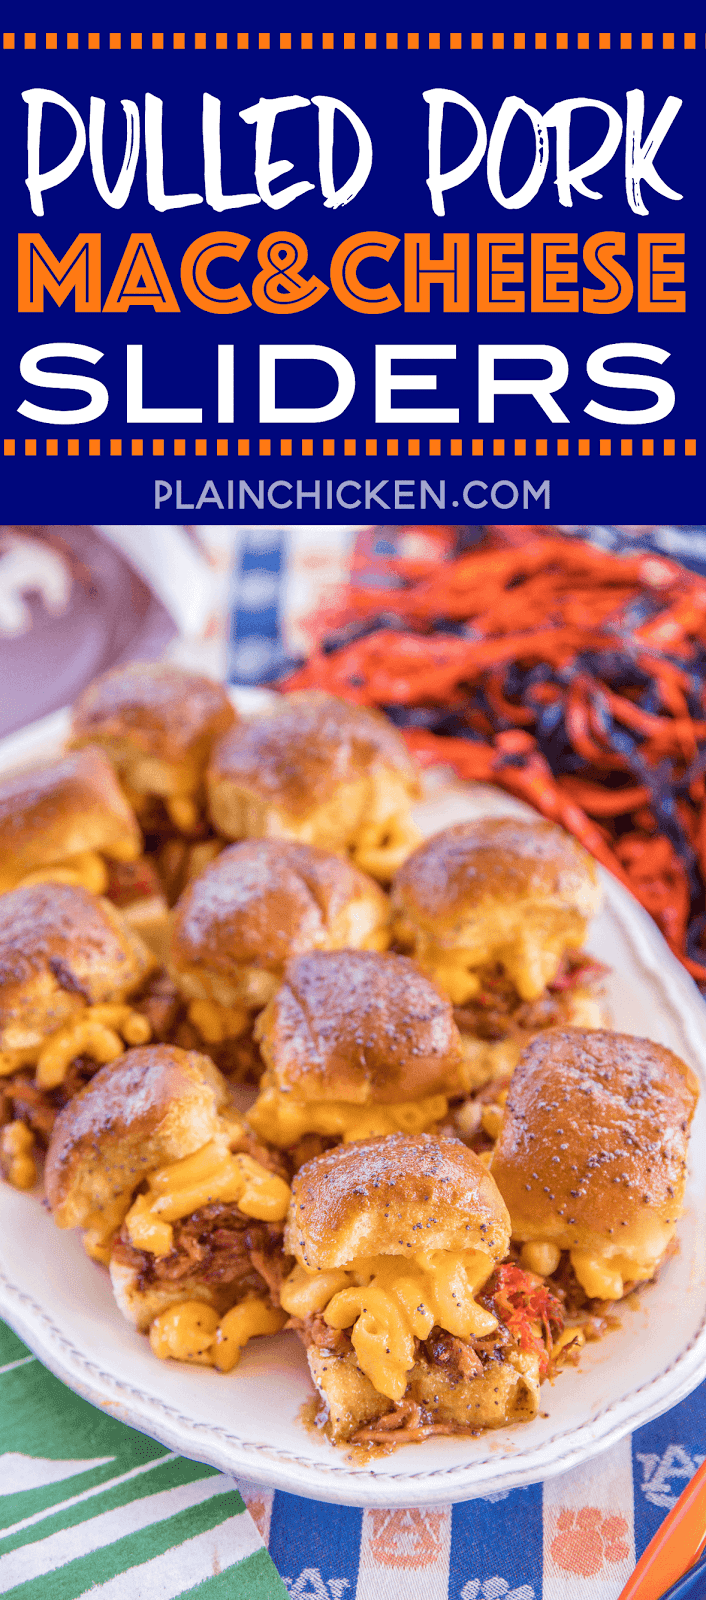 Pulled Pork Mac and Cheese Sliders recipe - CRAZY good! I took these to a party and they were gone in a blink of an eye!!! Slow cooked pulled pork on Hawaiian rolls topped with macaroni and cheese, bbq sauce and a sweet and savory butter sauce. These sandwiches are THE BEST!!!! Pulled pork, store-bought mac and cheese, Hawaiian rolls, bbq sauce, butter, brown sugar, dijon mustard, Worcestershire sauce and poppy seeds. YUM! #pulledpork #ohpork #sandwiches #macandcheese